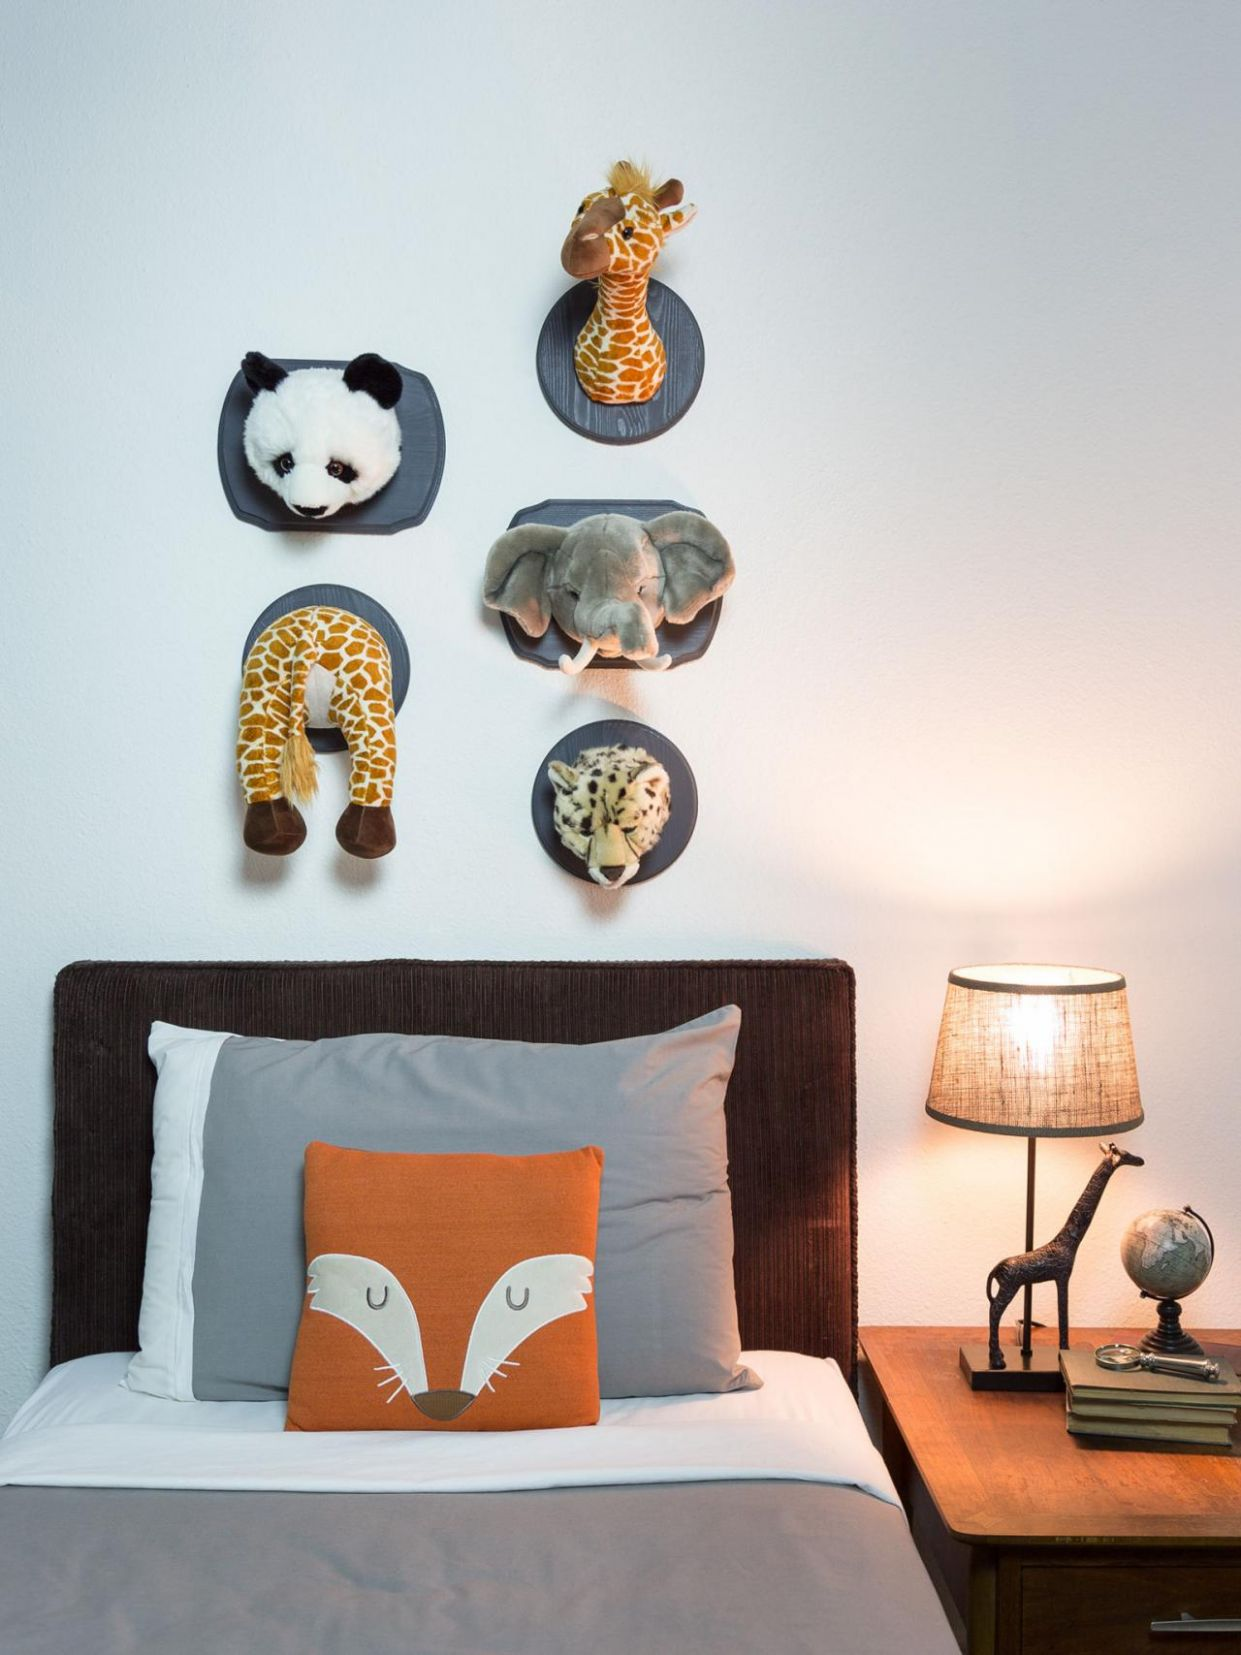 Vastu for home interiors: 9+ tips to energize your kid's bedroom